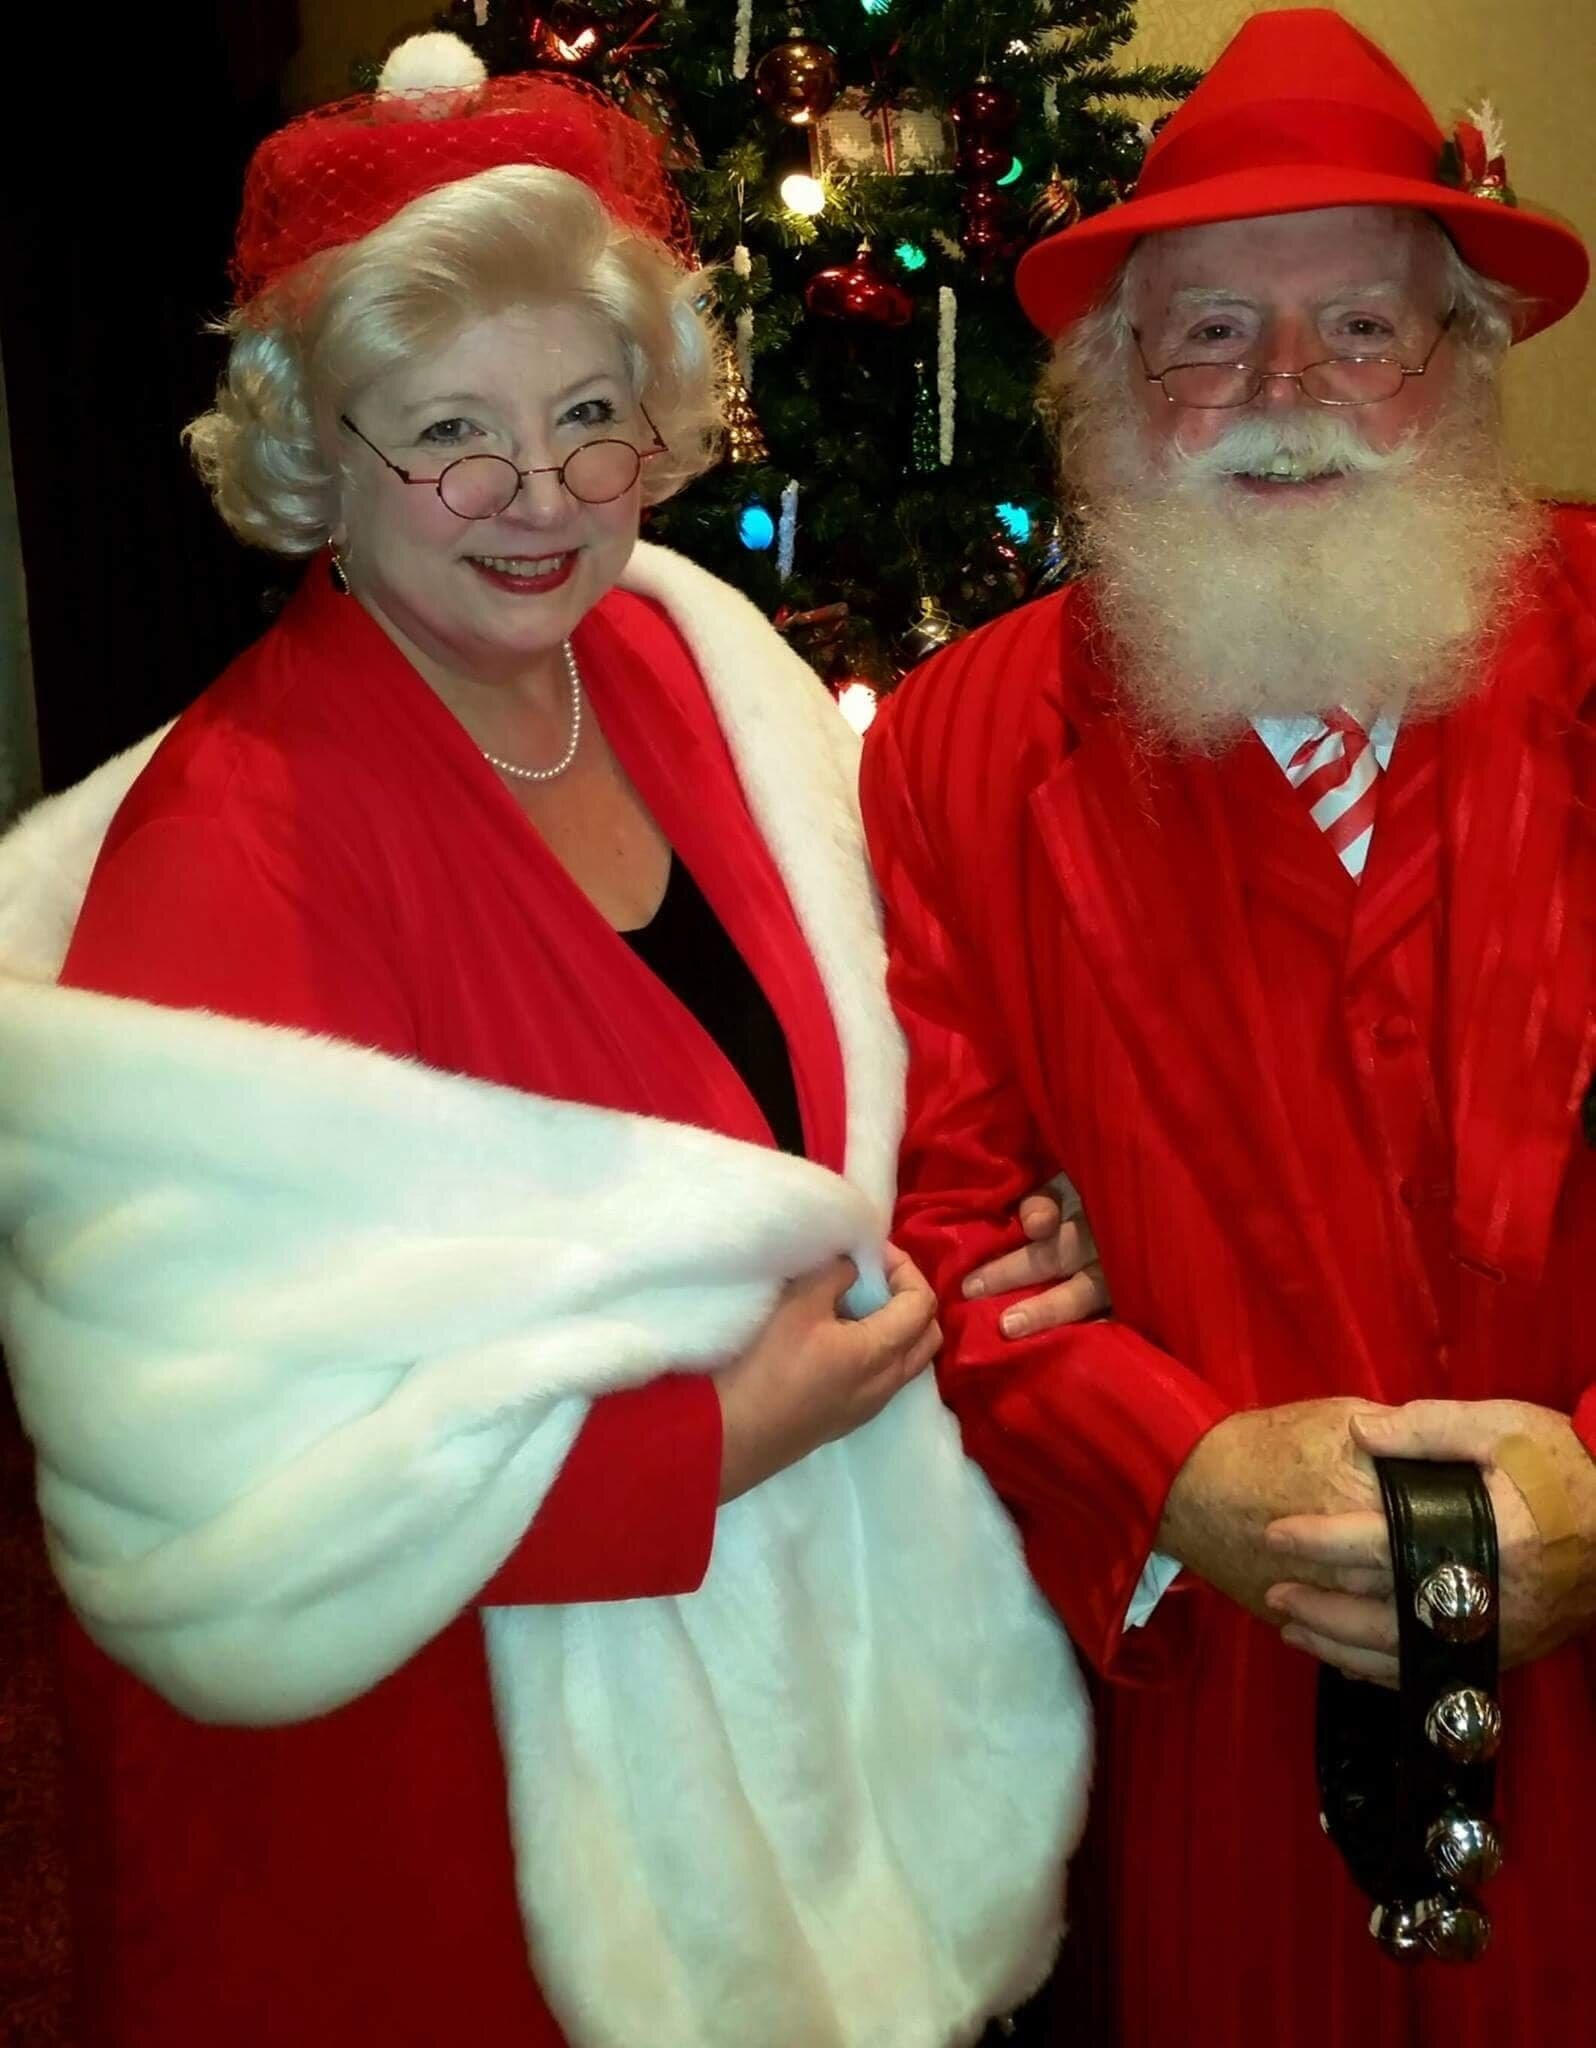 Cheryl Claus with the dapper Santa Carlucci, her business partner. I bought this hat at a sale in Gatlinburg, Tenn. I am so happy to own it, especially because it is infused with such spirit.